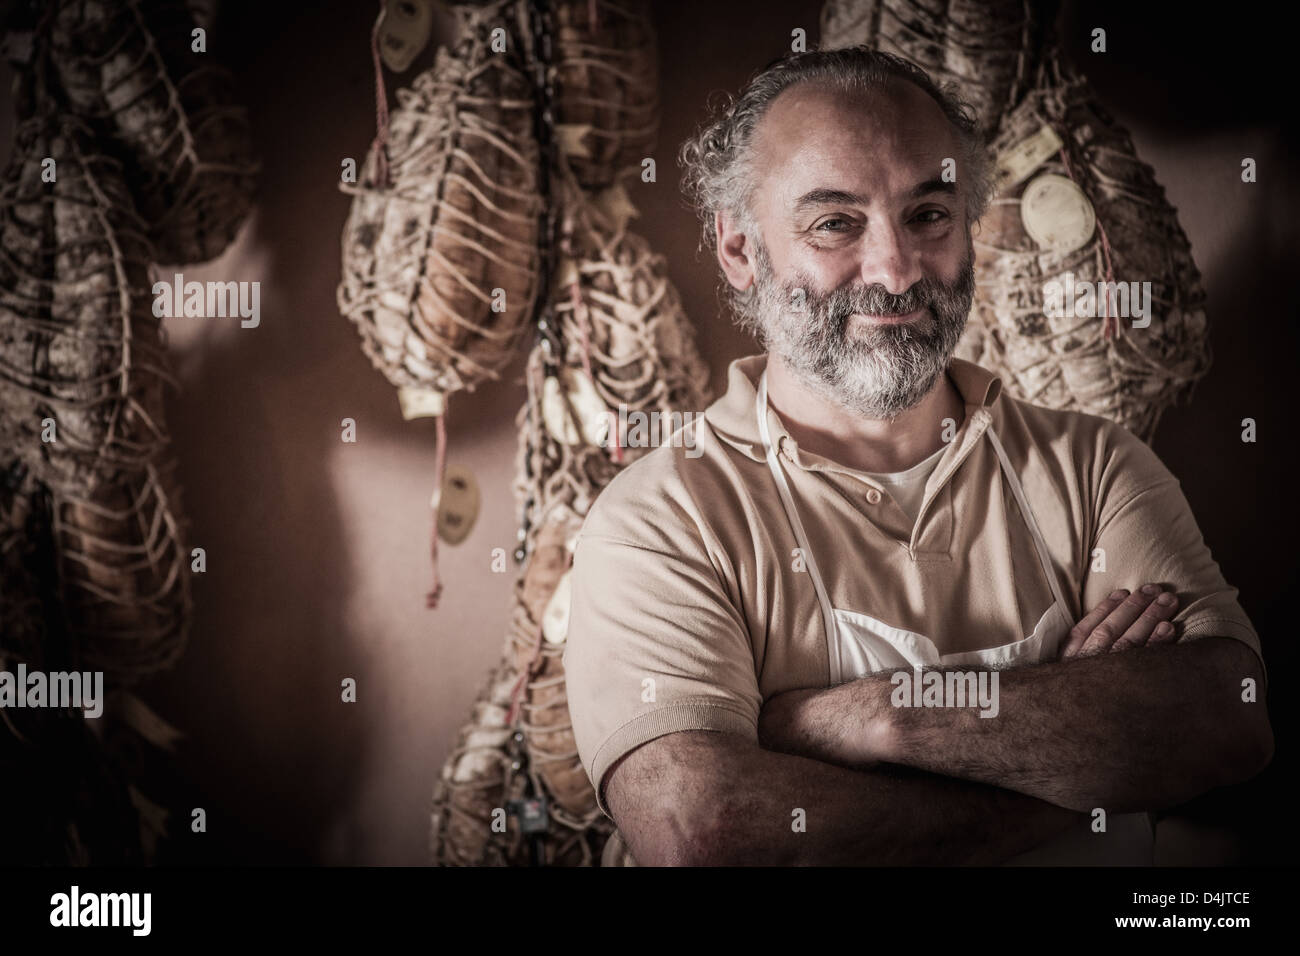 Butcher standing by hanging meat - Stock Image